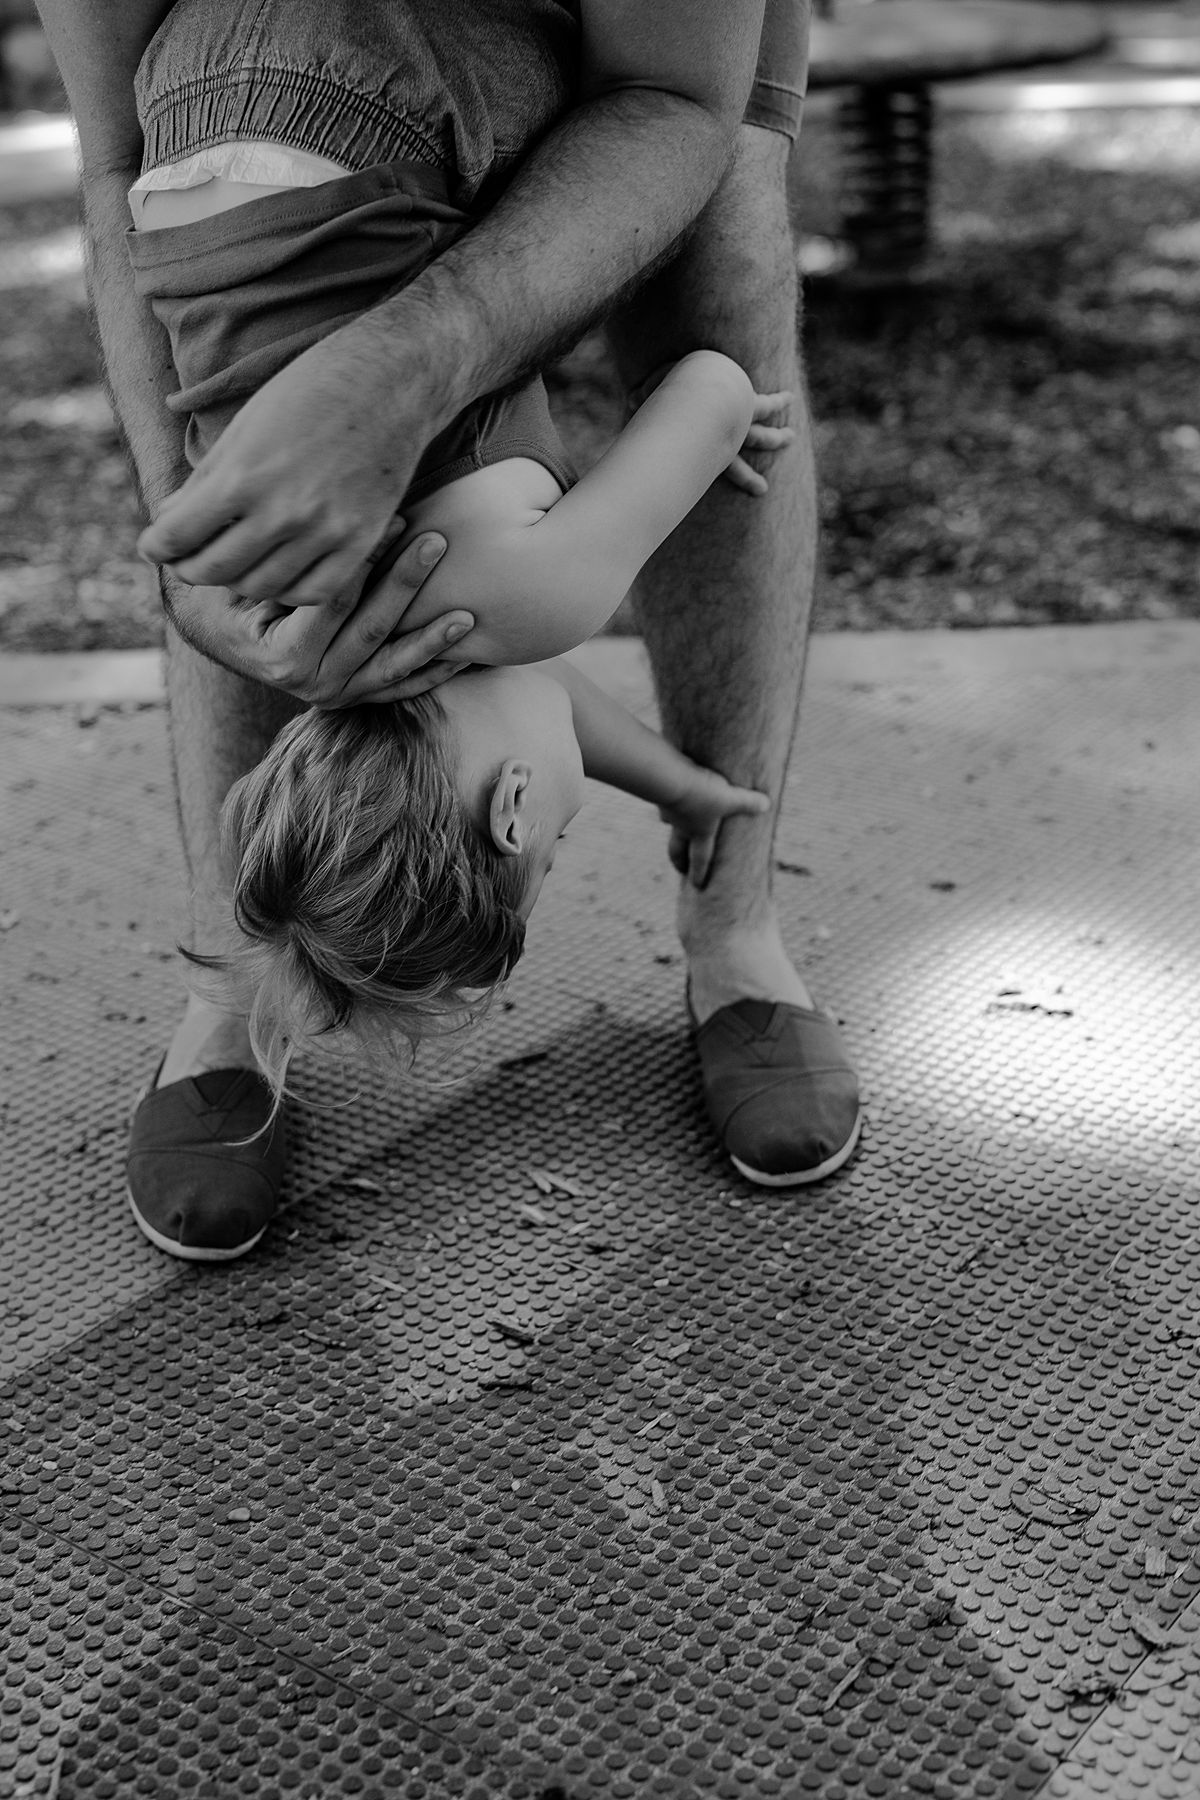 black and white image of son enjoying shoulder ride from dad in playground. capturing fleeting family moments is nyc family and newborn photographer krystil mcdowall photography